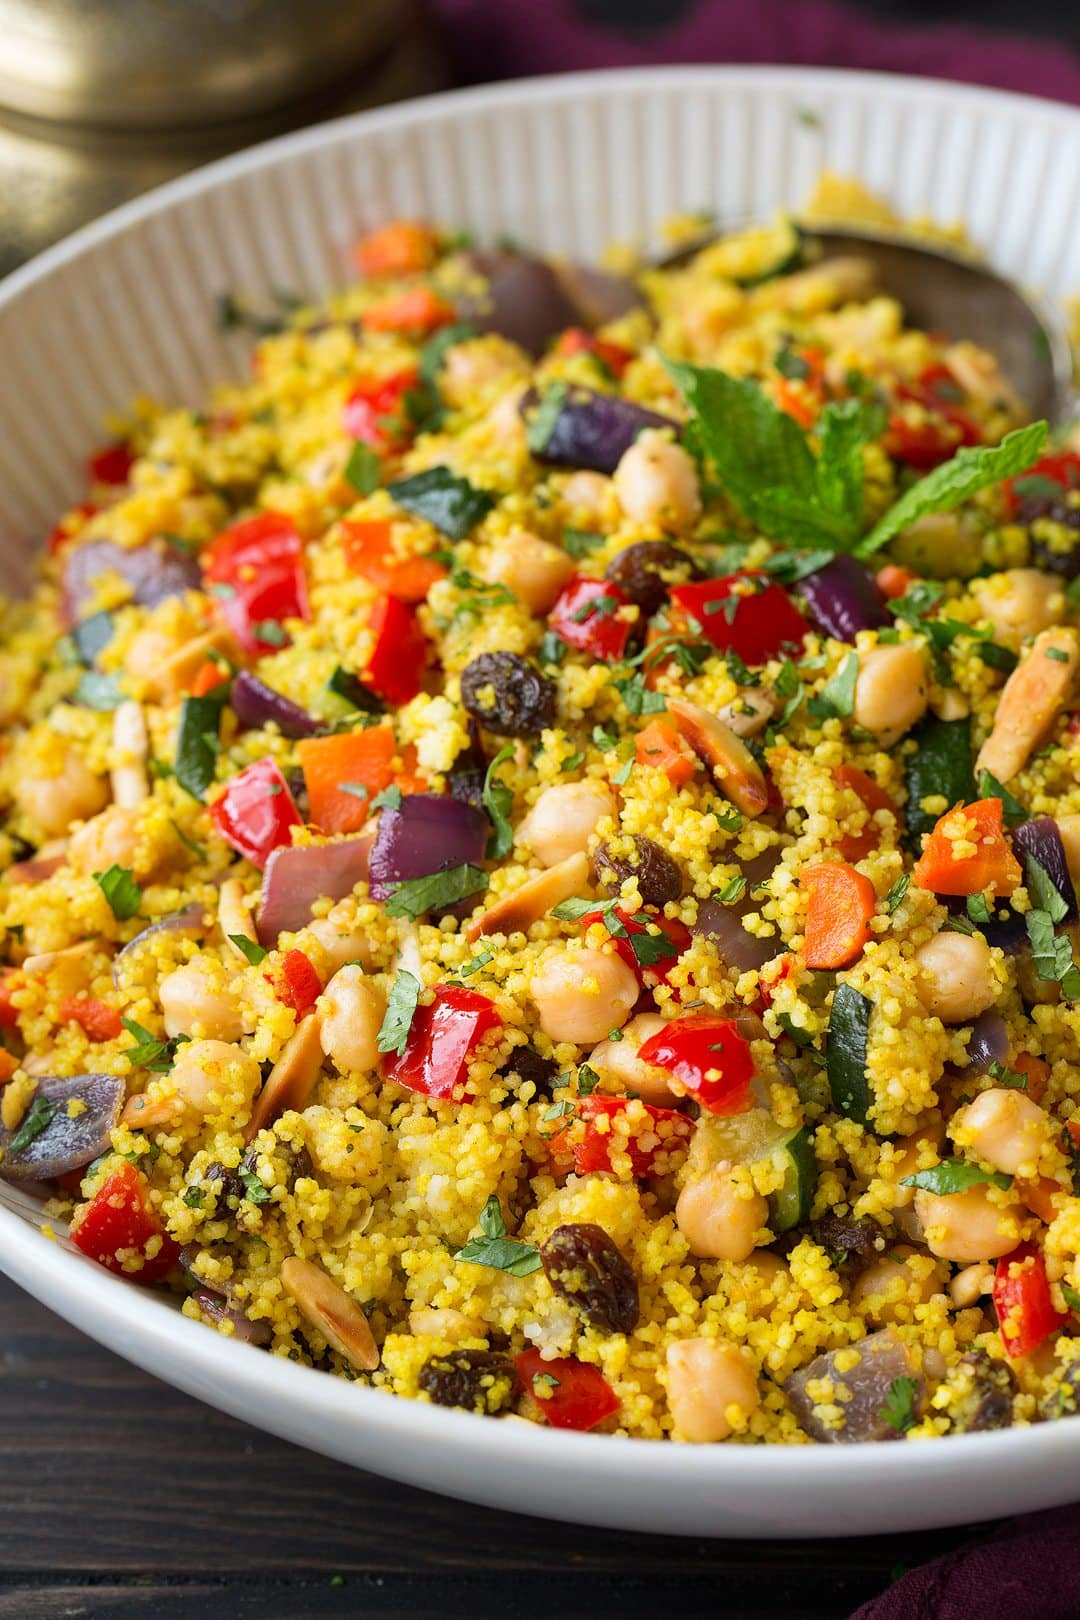 Couscous with Roasted Vegetables, Chick Peas and Almonds